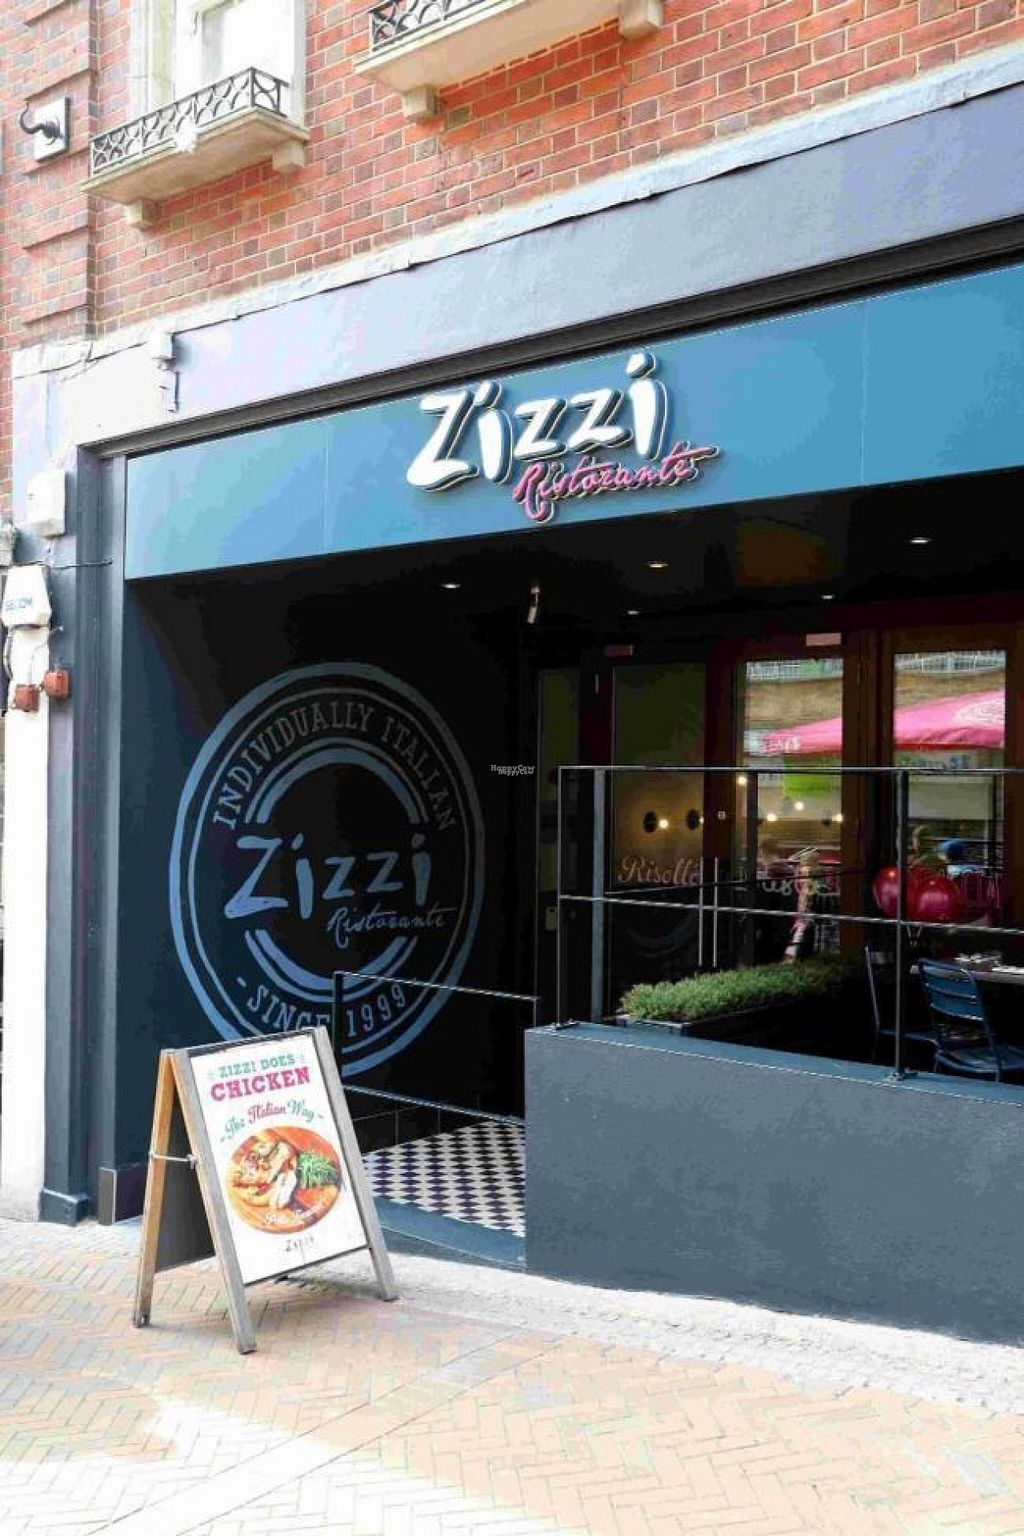 """Photo of Zizzi  by <a href=""""/members/profile/Meaks"""">Meaks</a> <br/>Zizzi <br/> August 18, 2016  - <a href='/contact/abuse/image/77406/169731'>Report</a>"""